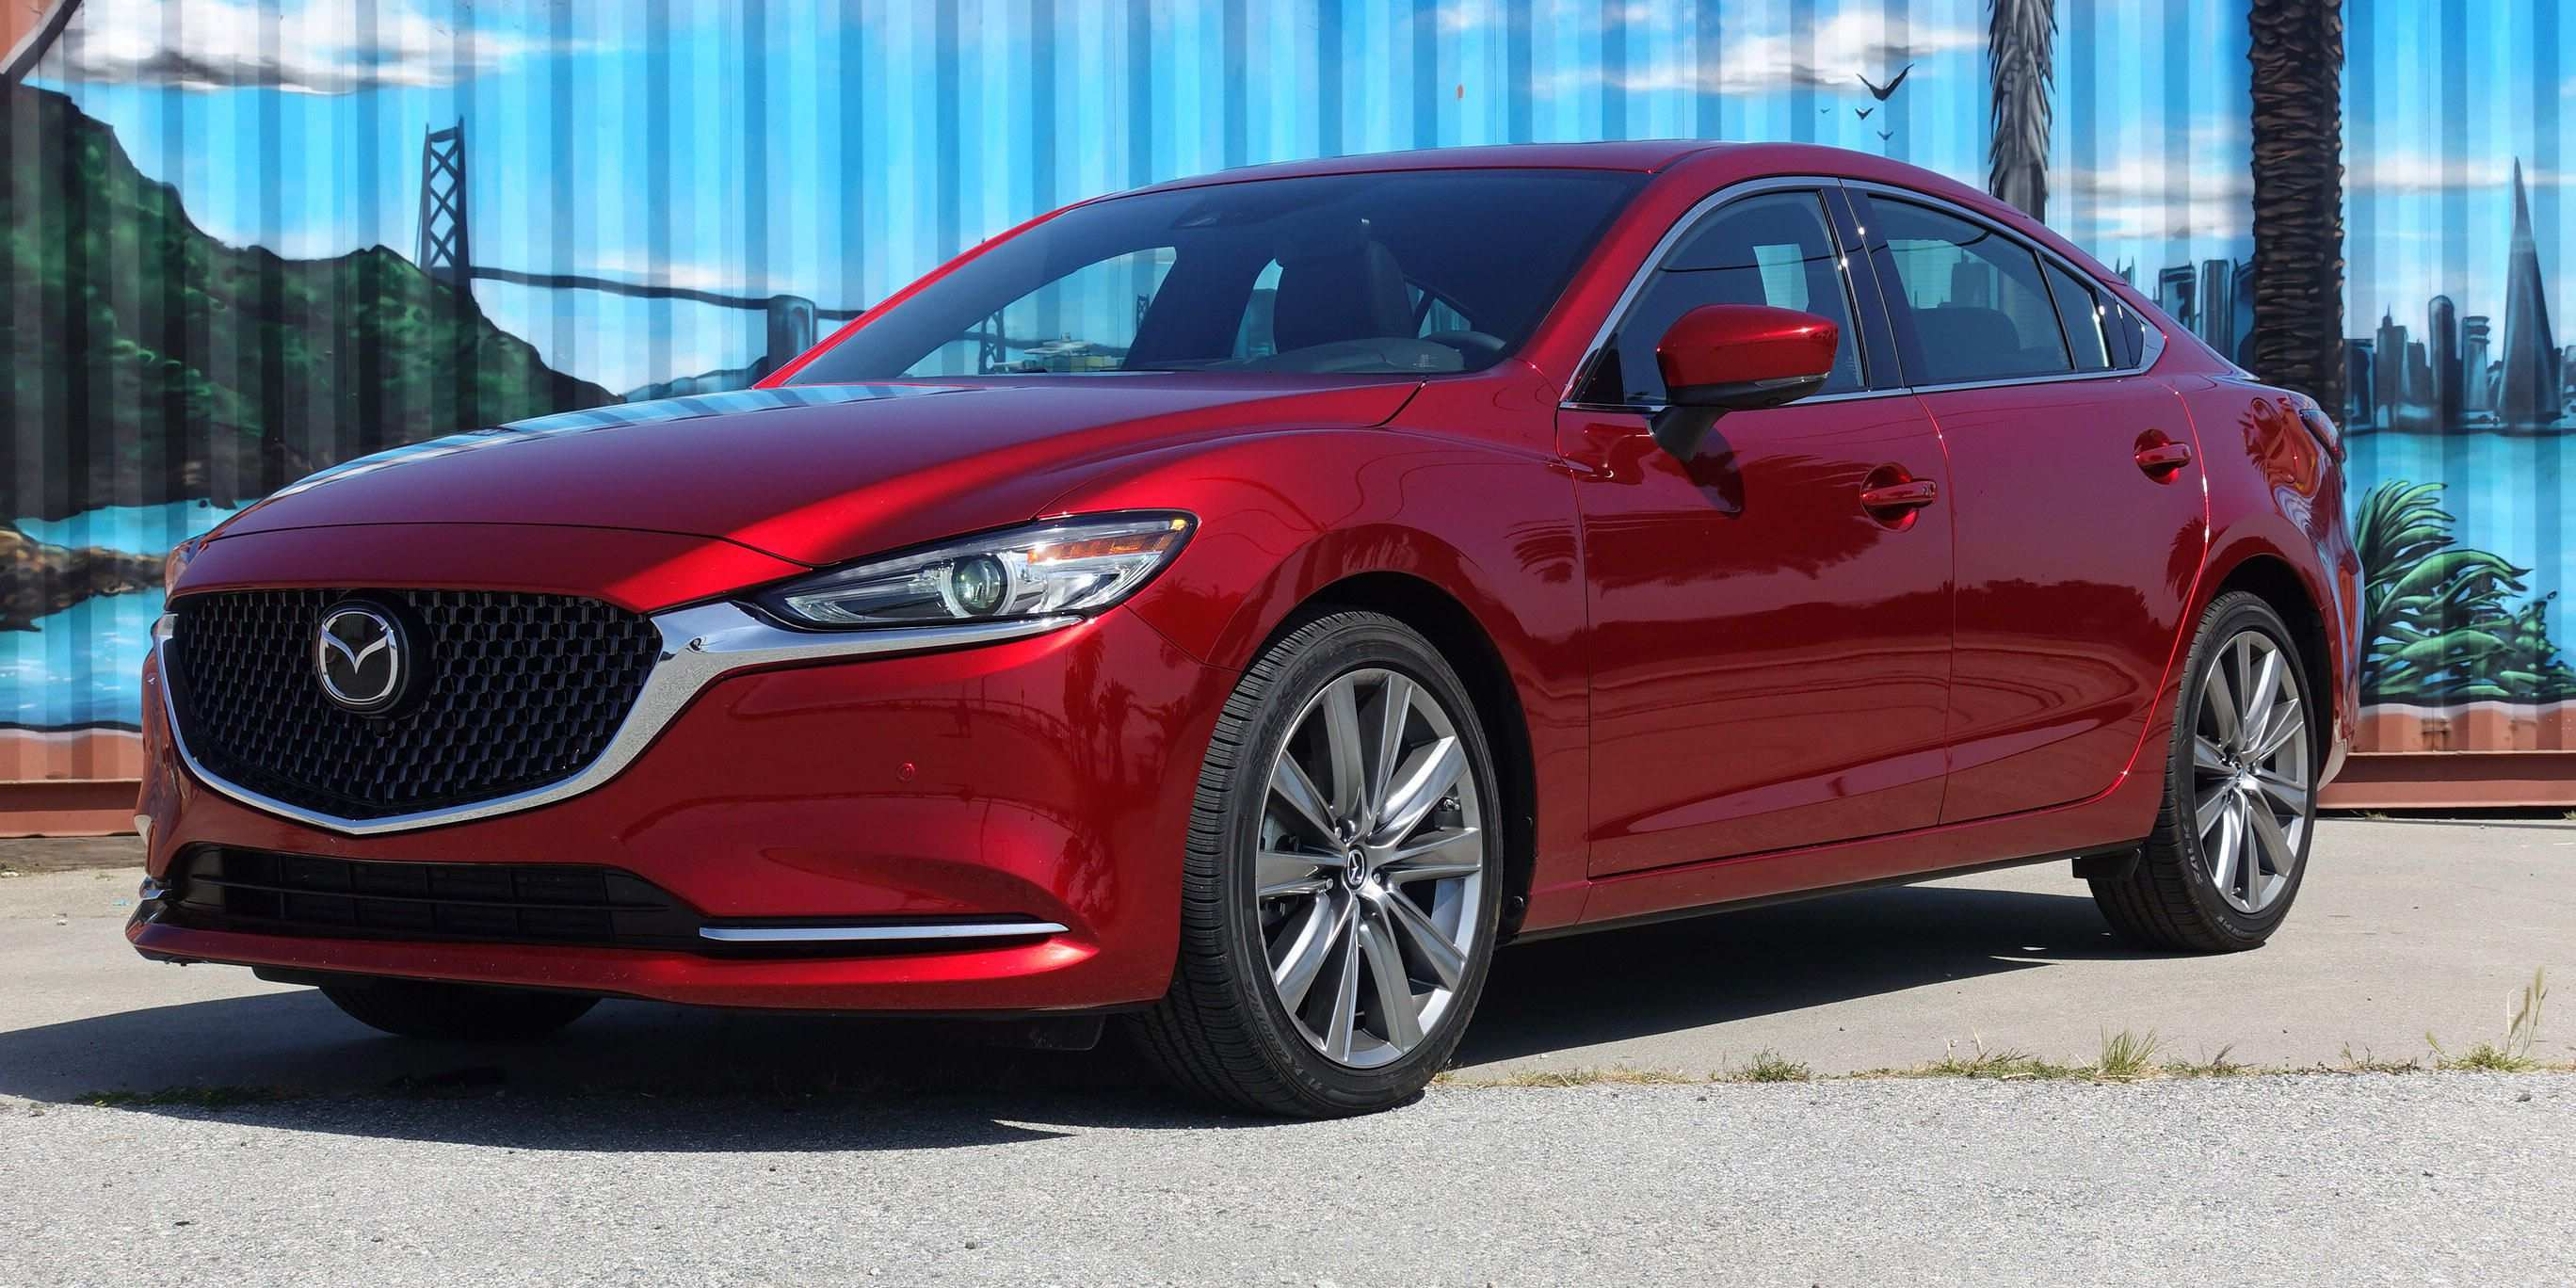 56 All New Best 2019 Mazda 6 Specs Spesification Engine by Best 2019 Mazda 6 Specs Spesification